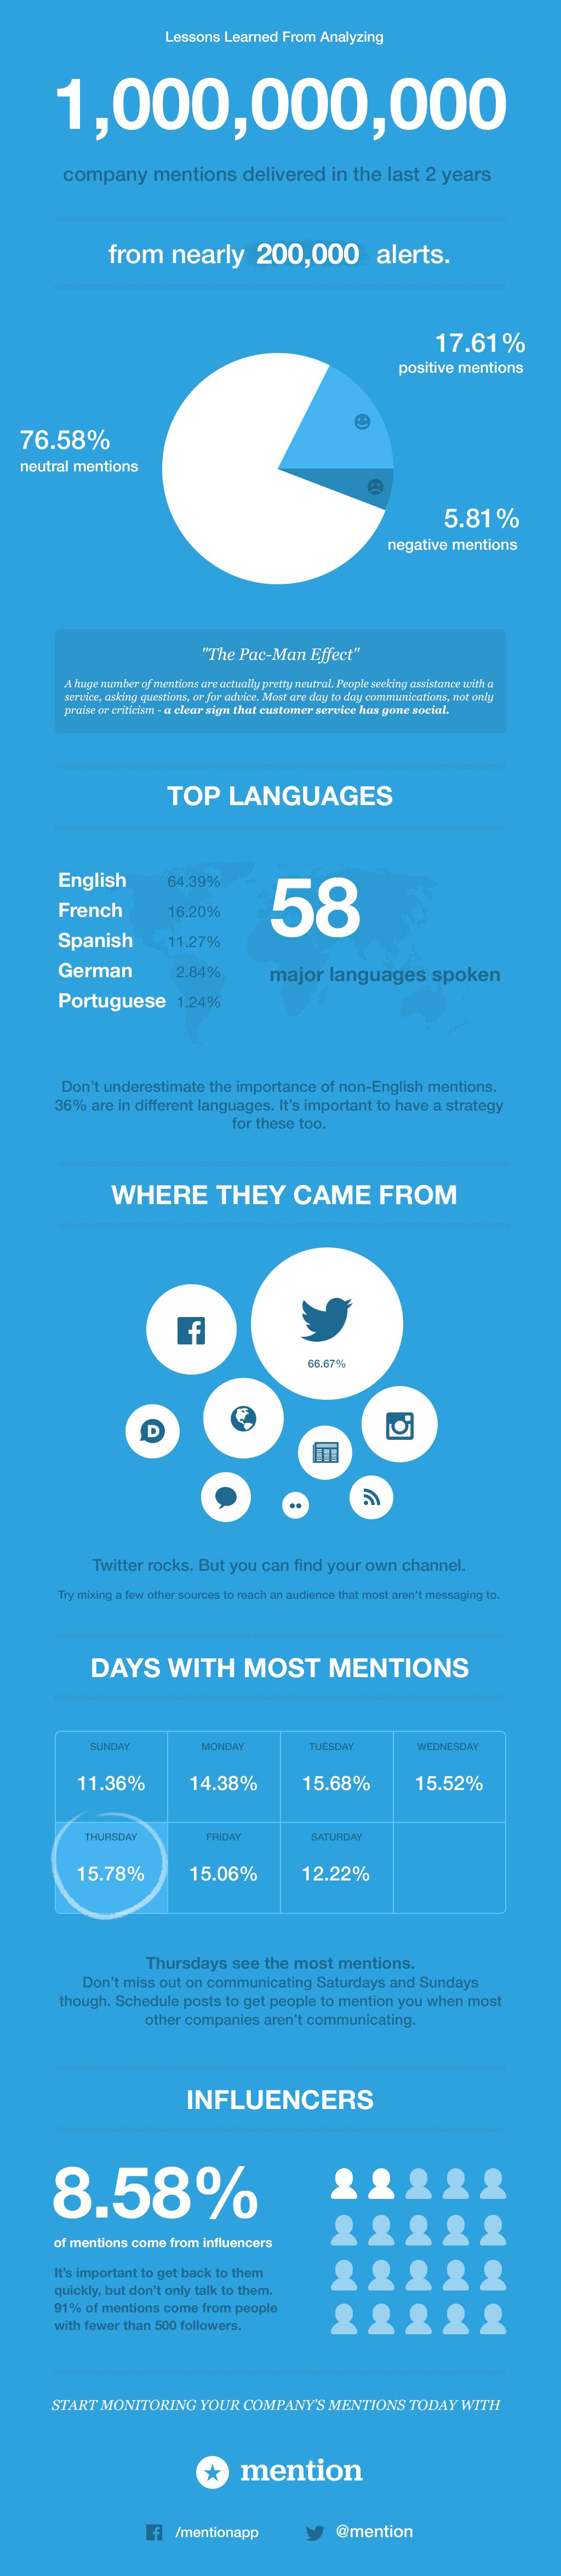 Lessons Learned From Analyzing 1,000,000,000 Company Mentions - #infographic